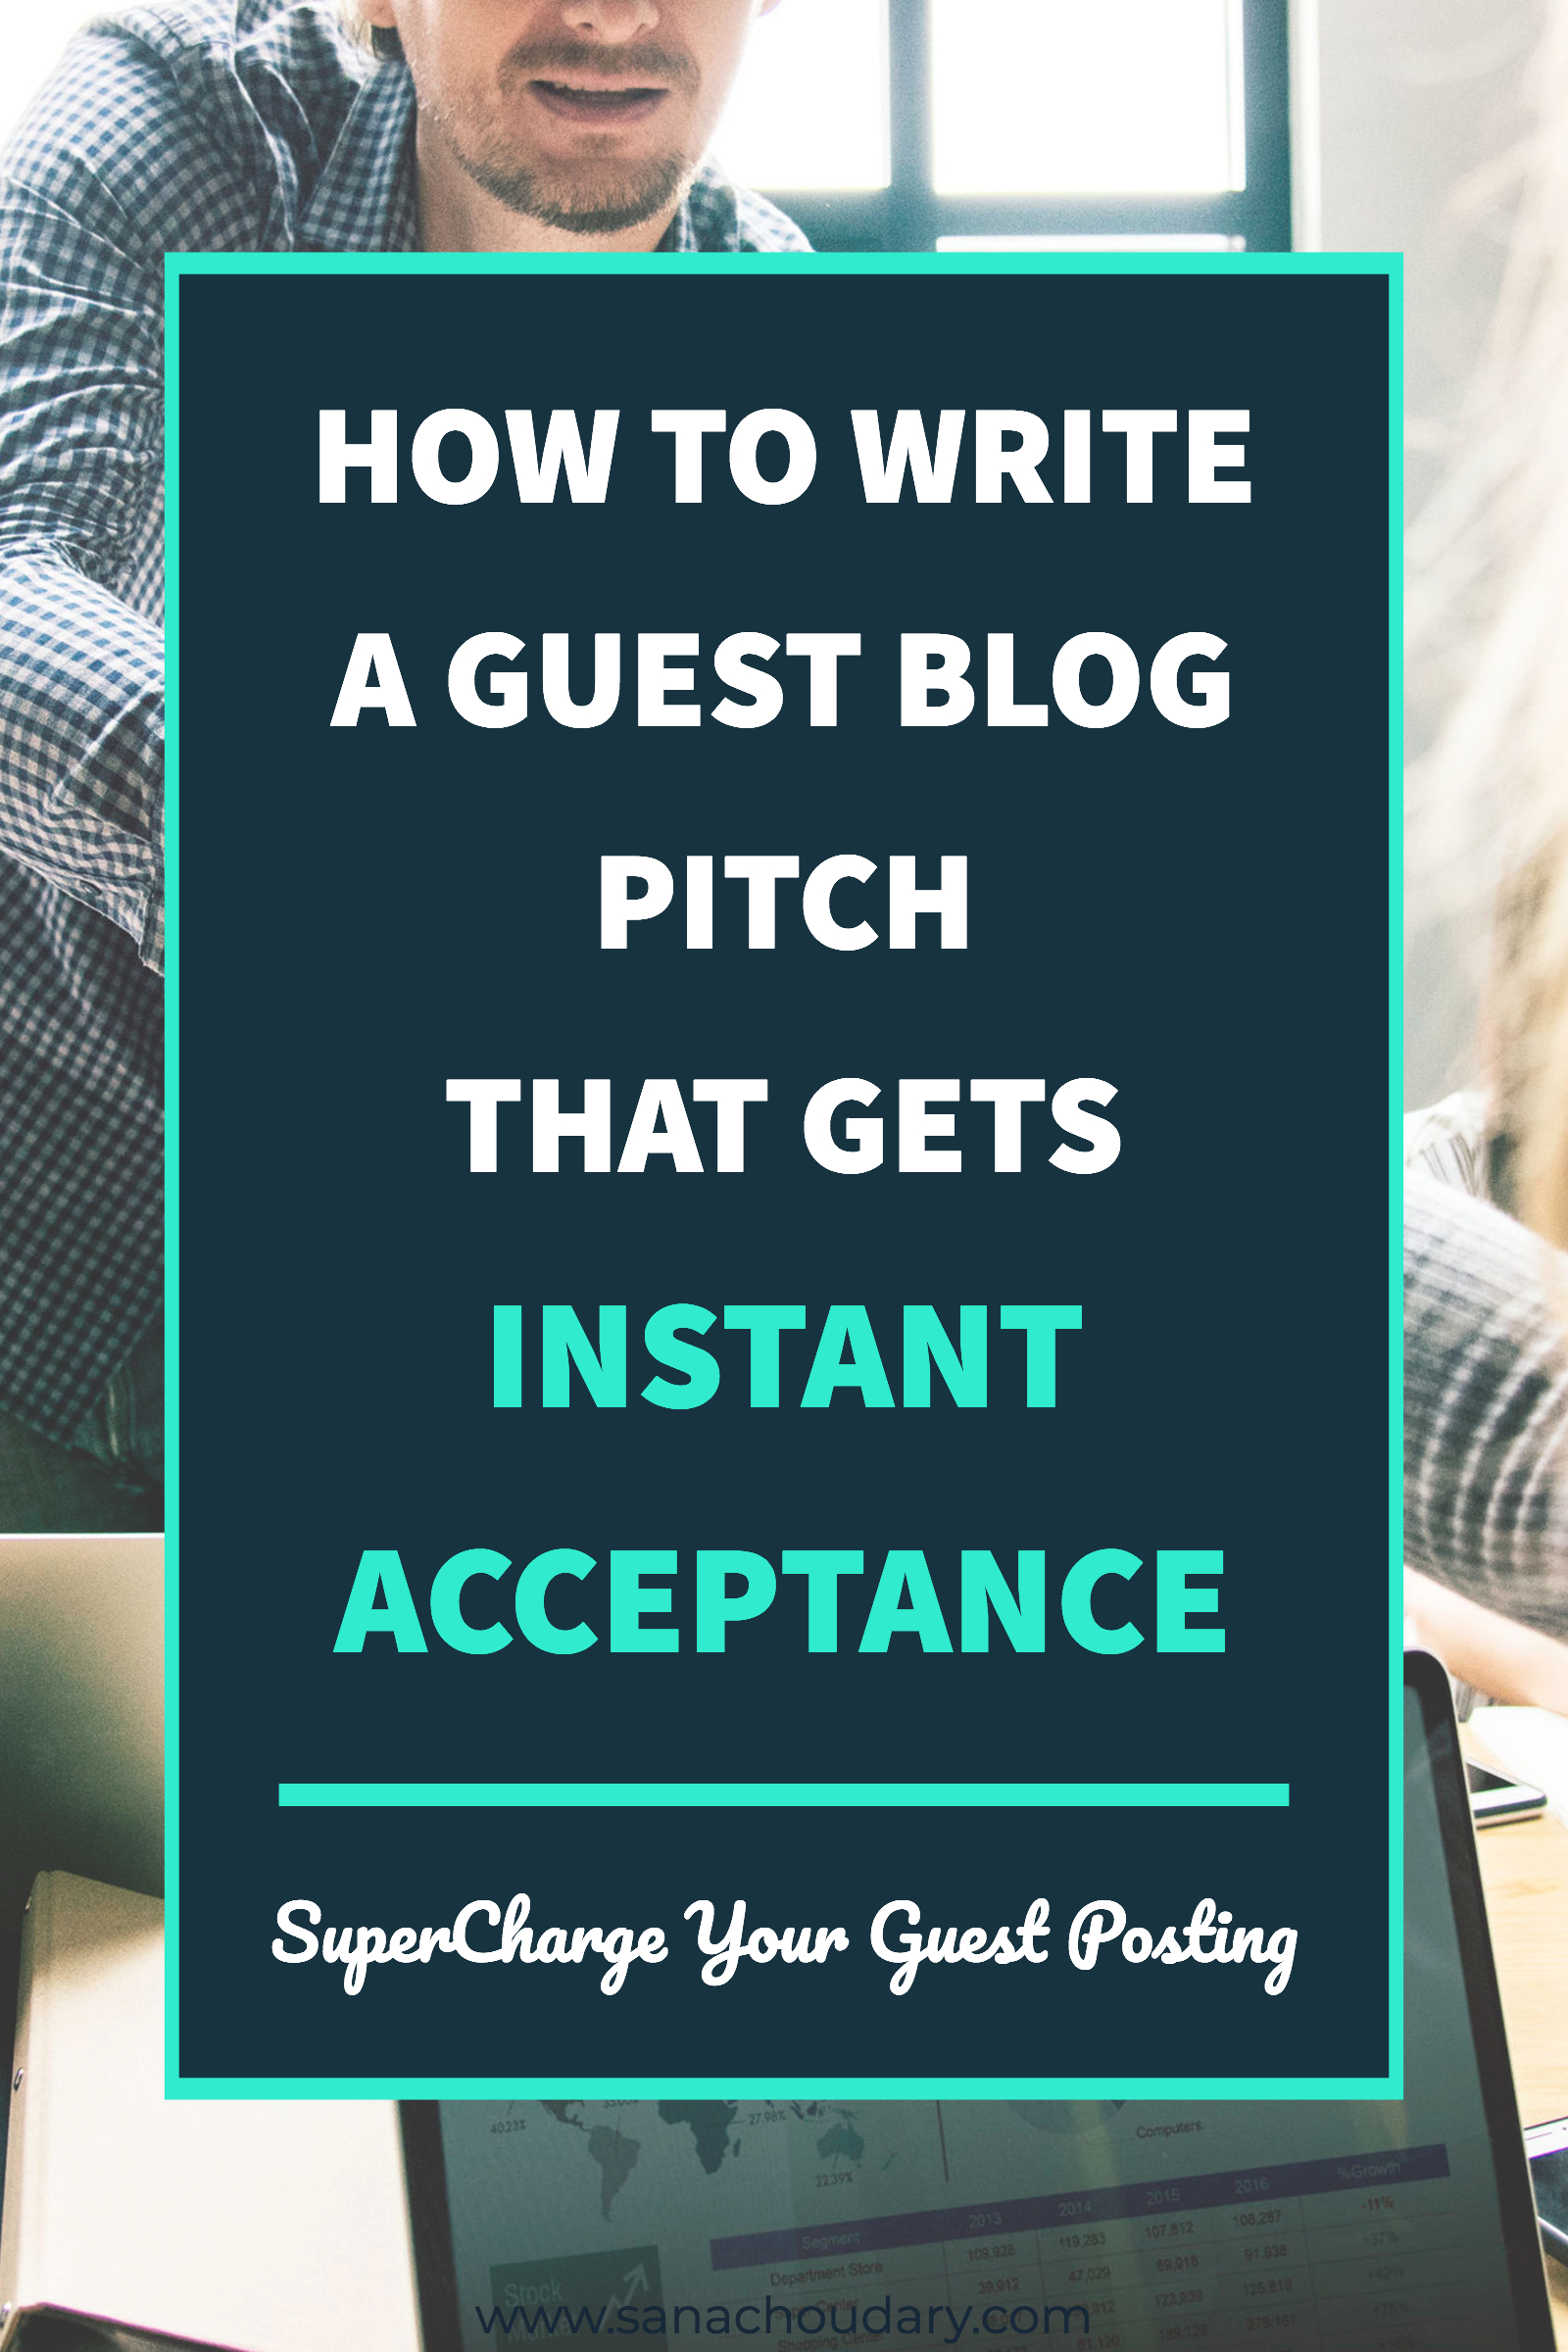 How to write a guest blog pitch that gets instant acceptance | Guest